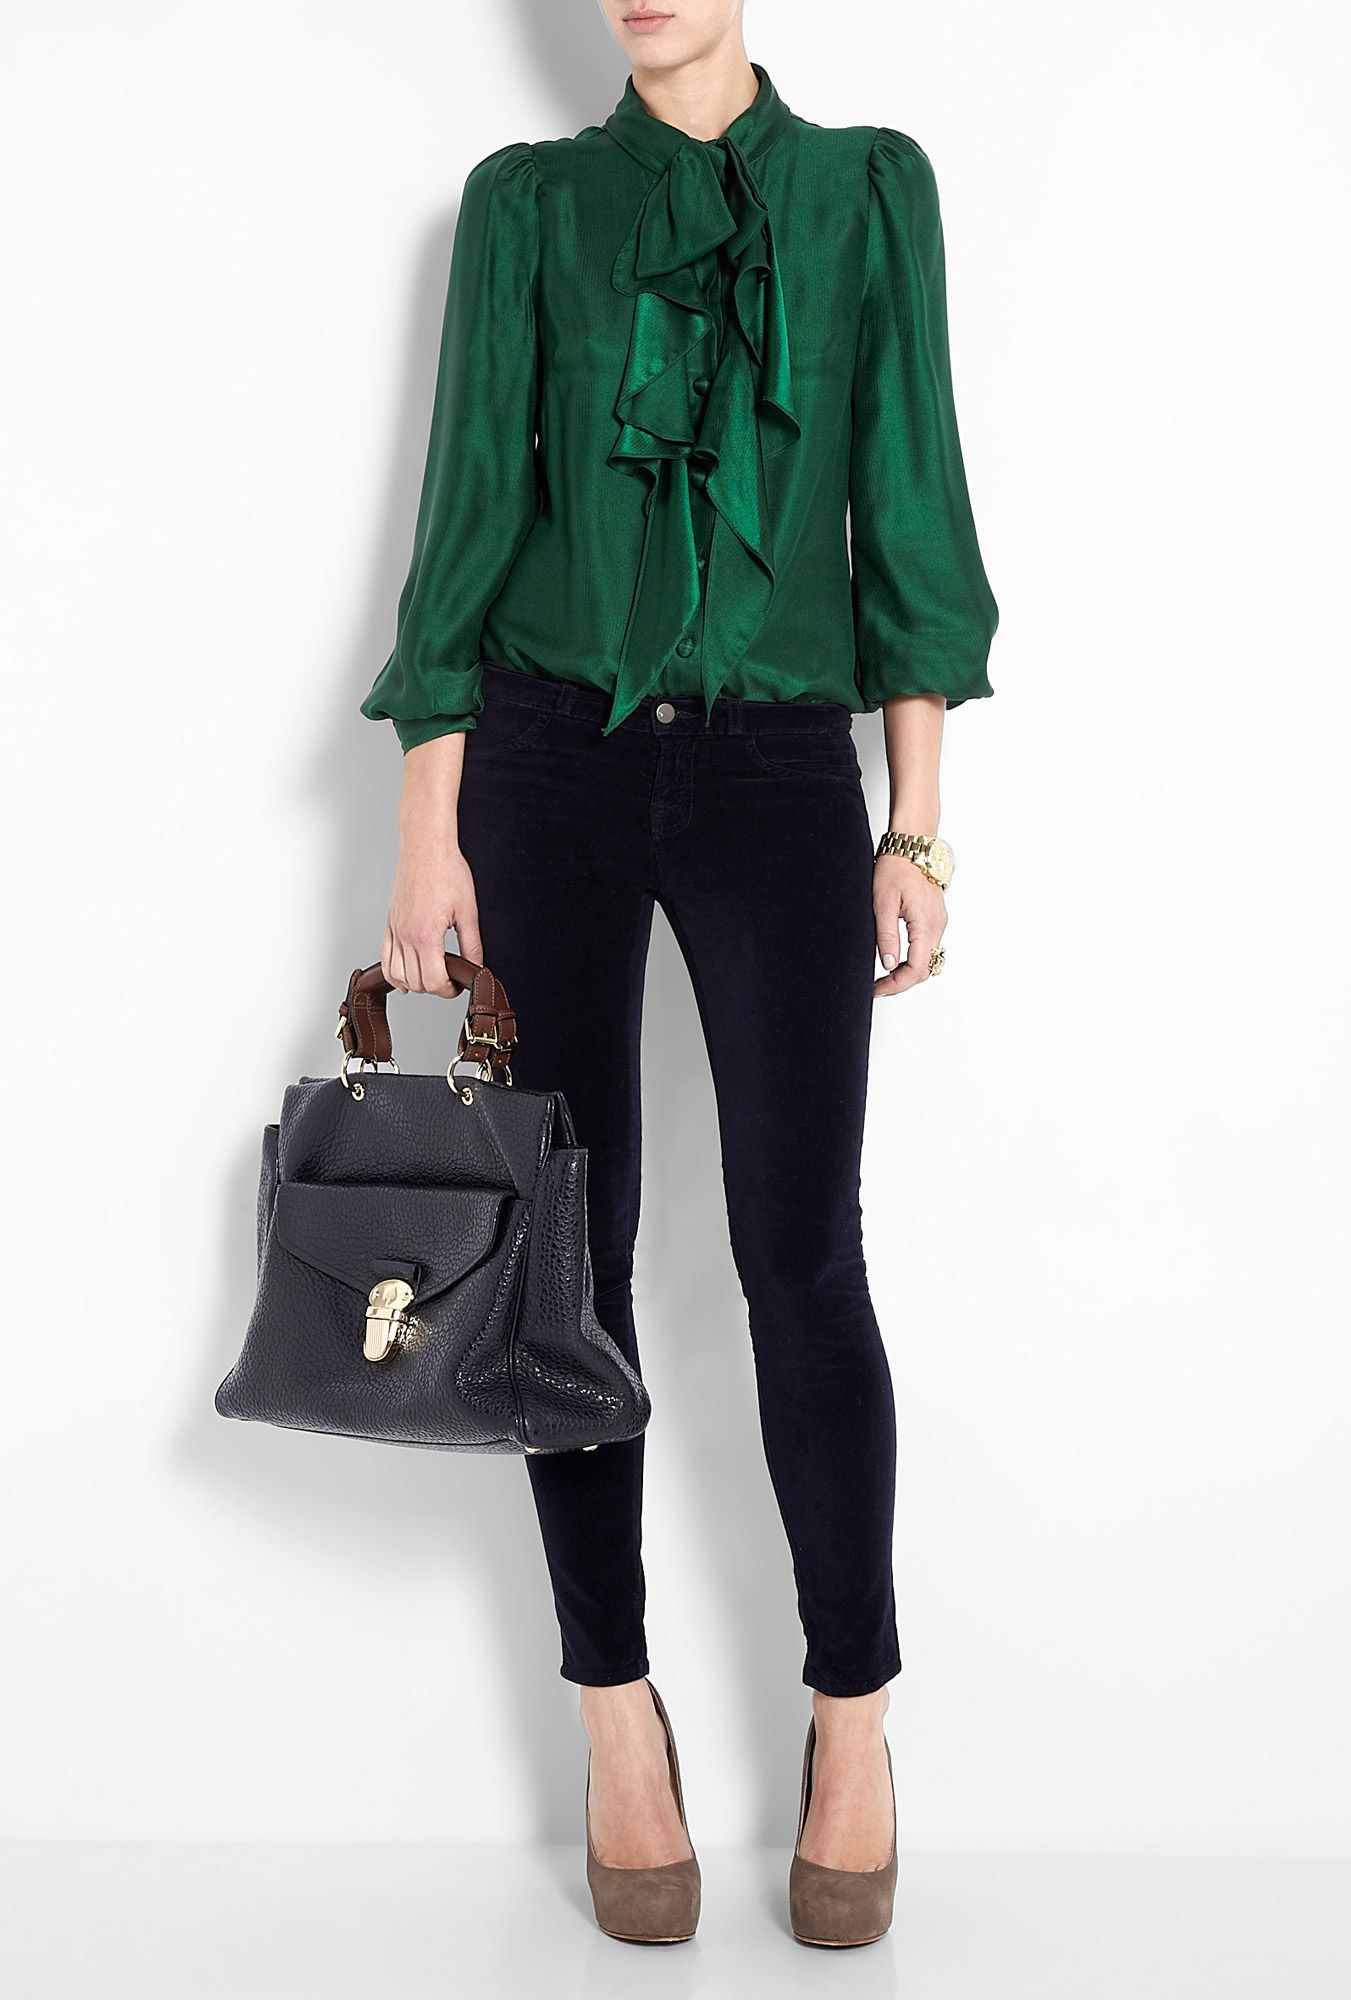 Wish I actually had this Milly blouse. Use Target forest